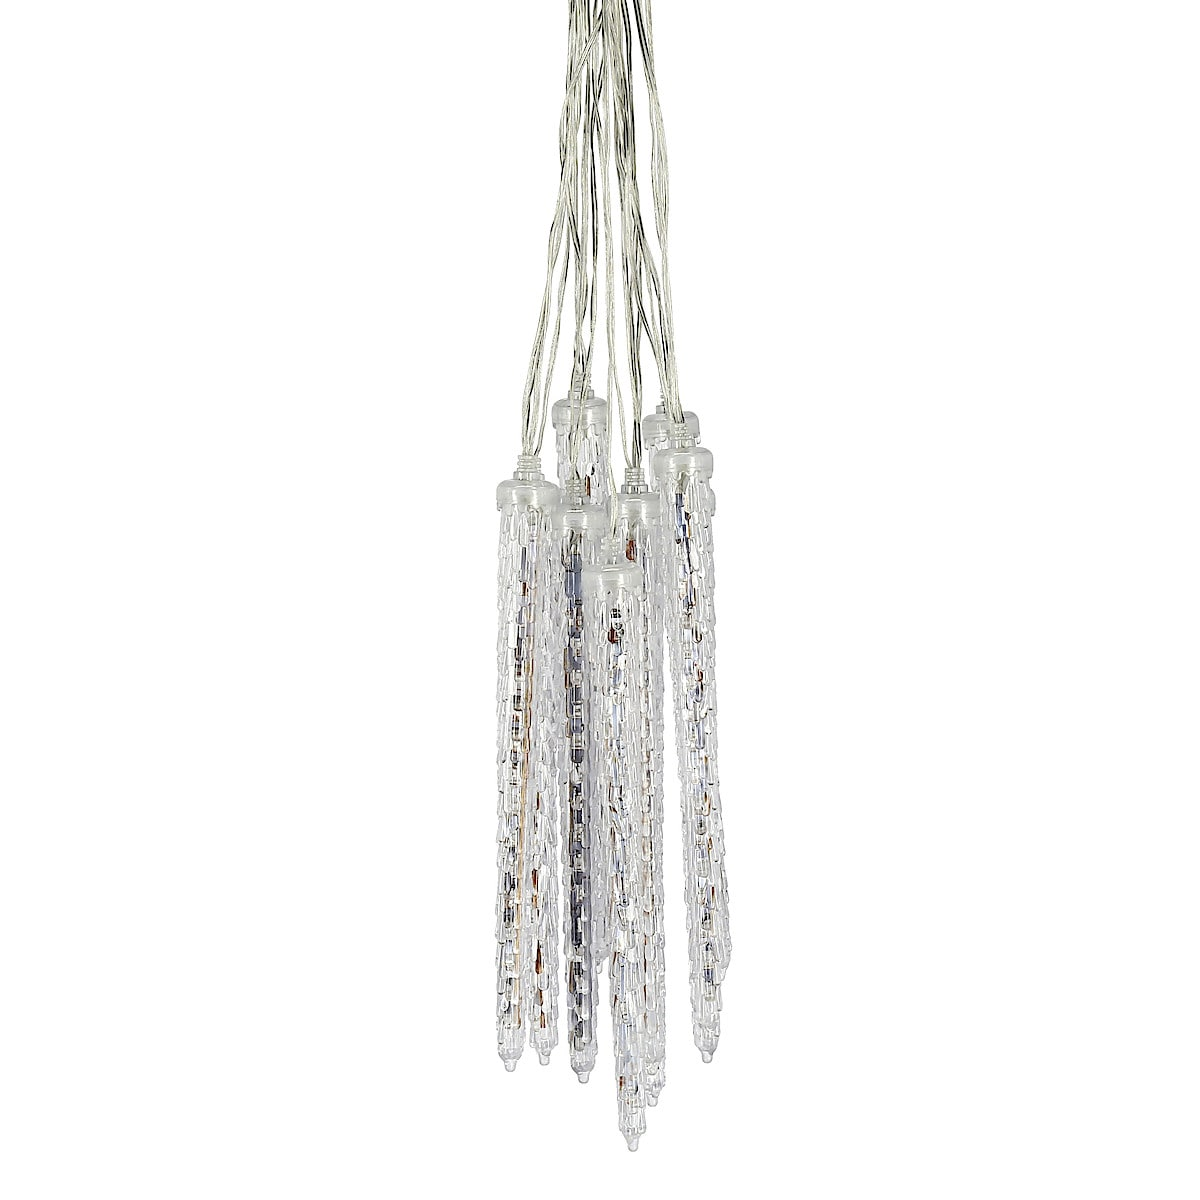 Northlight Dripping Icicle LED String Light